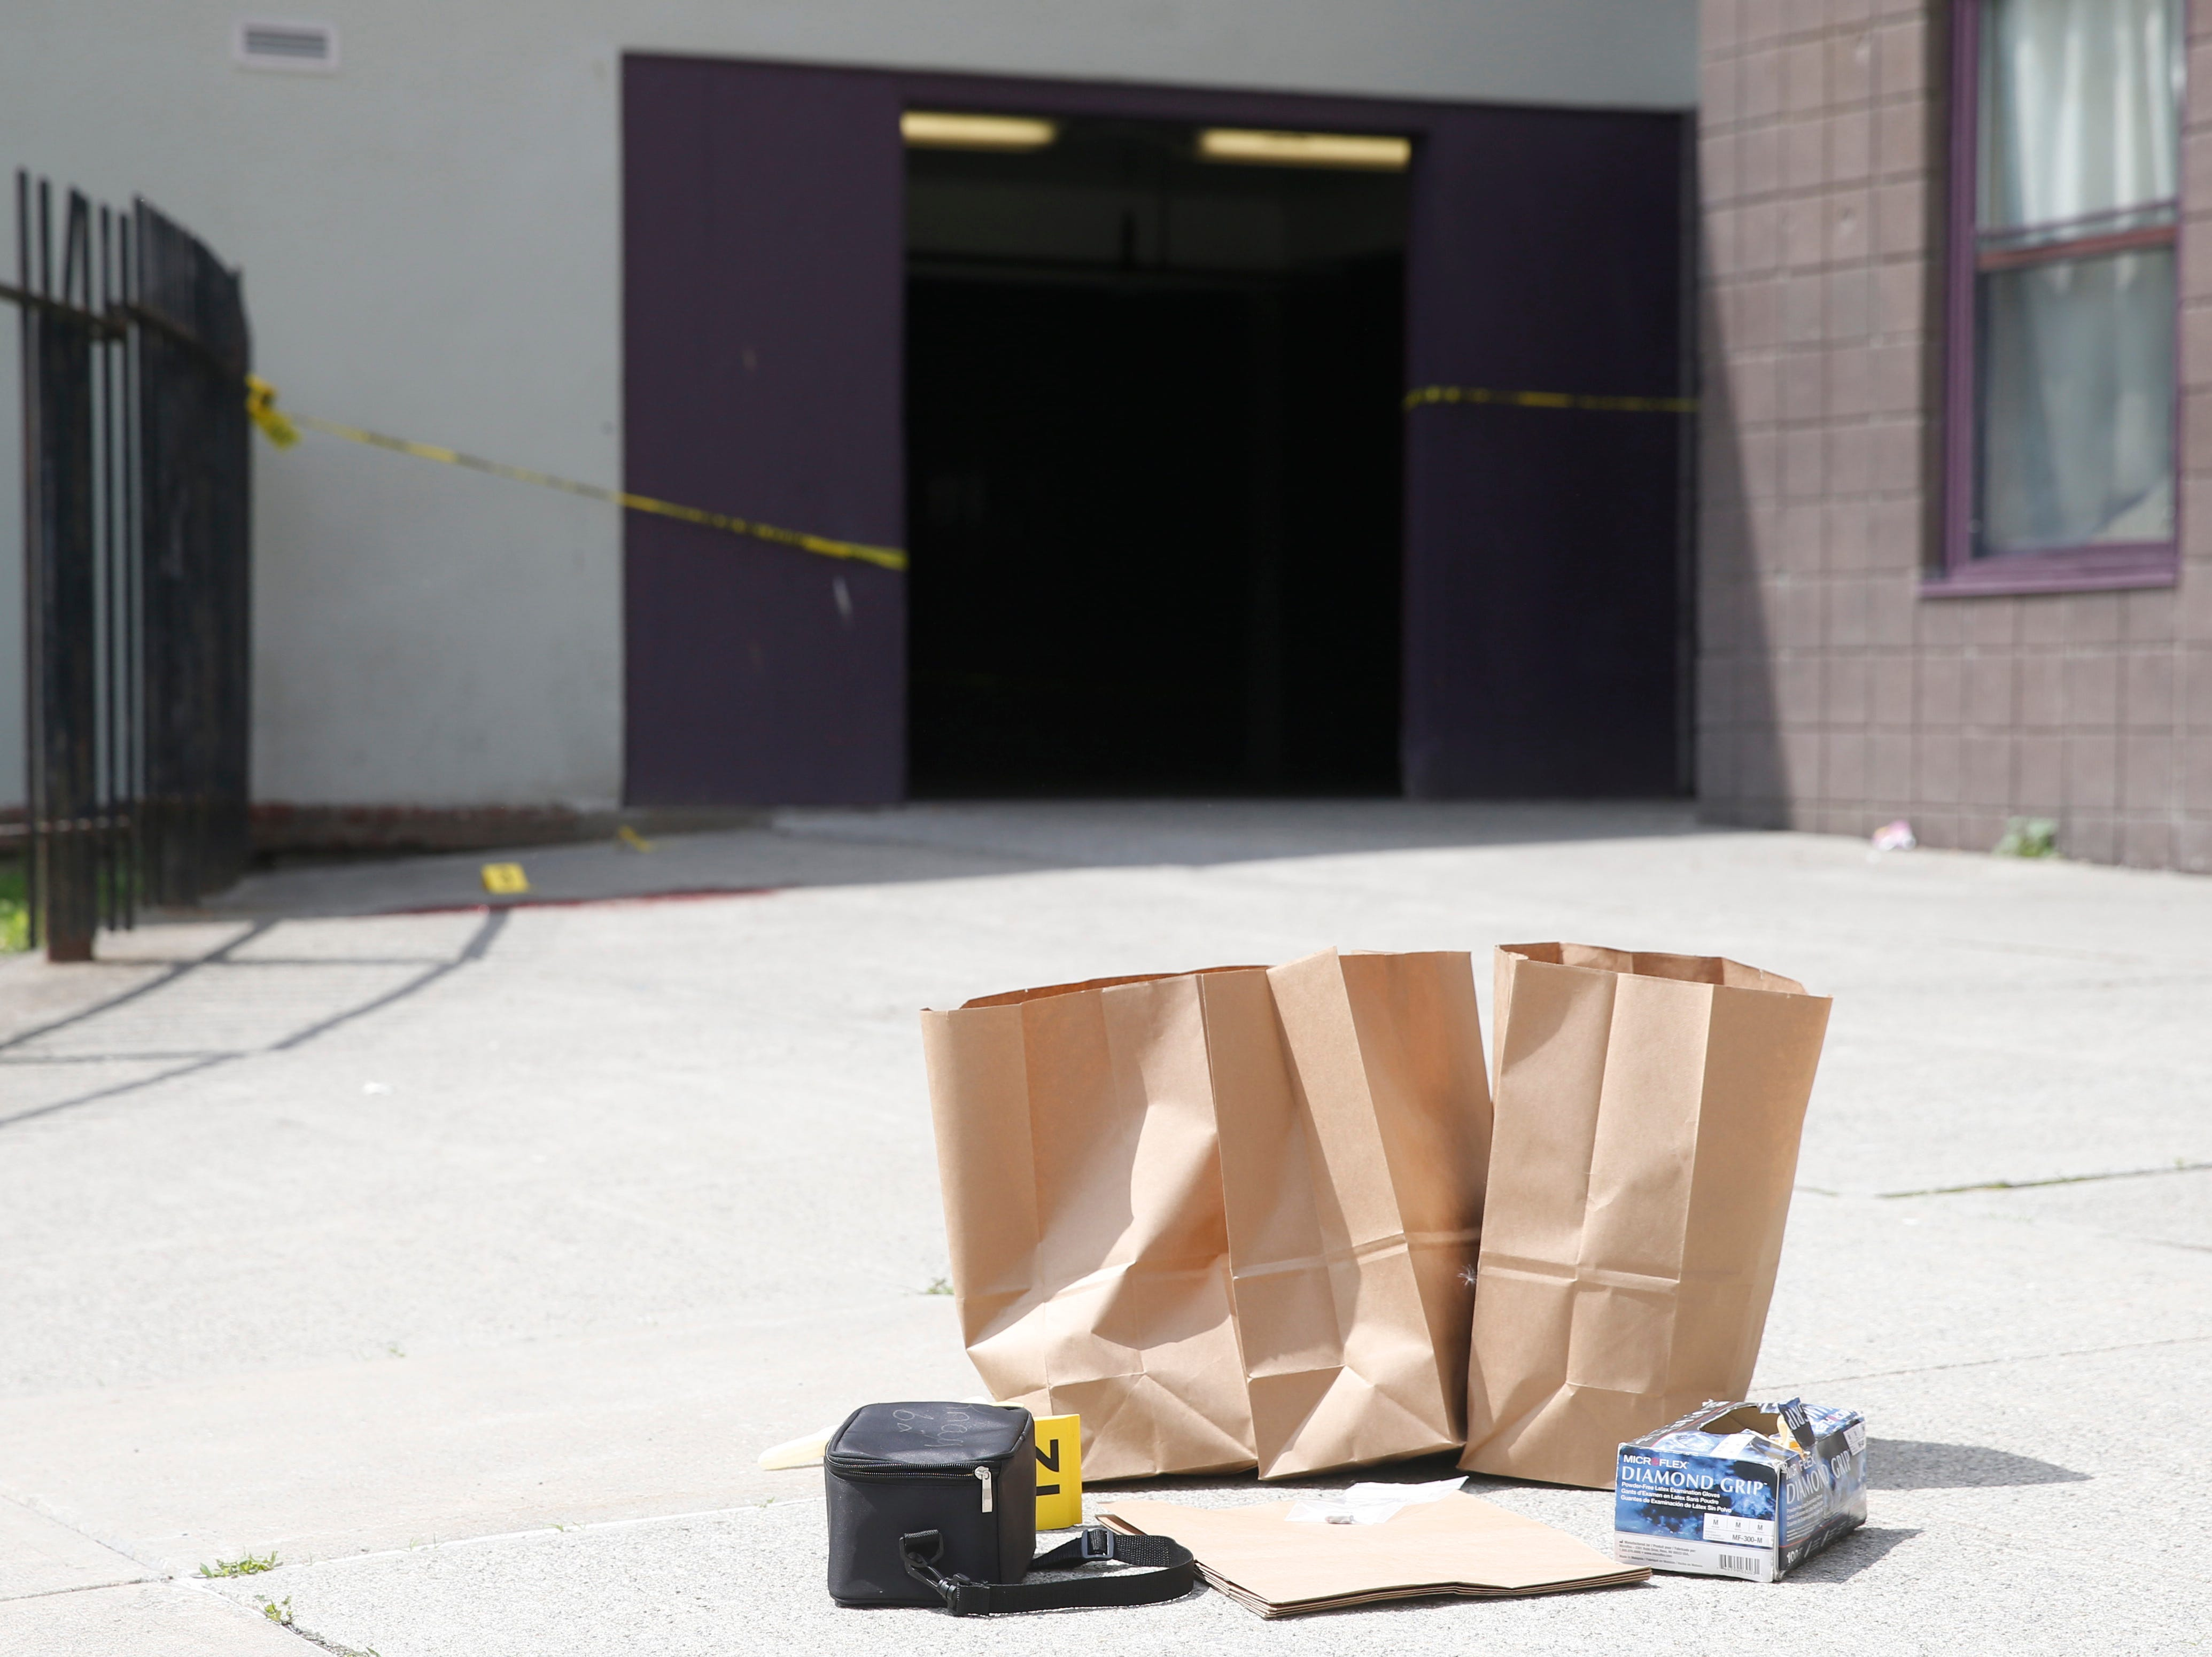 Evidence collected by the City of Poughkeepsie Police during an investigation of a shooting that occurred at the Hudson Gardens Apartments in the City of Poughkeepsie on May 7, 2019.